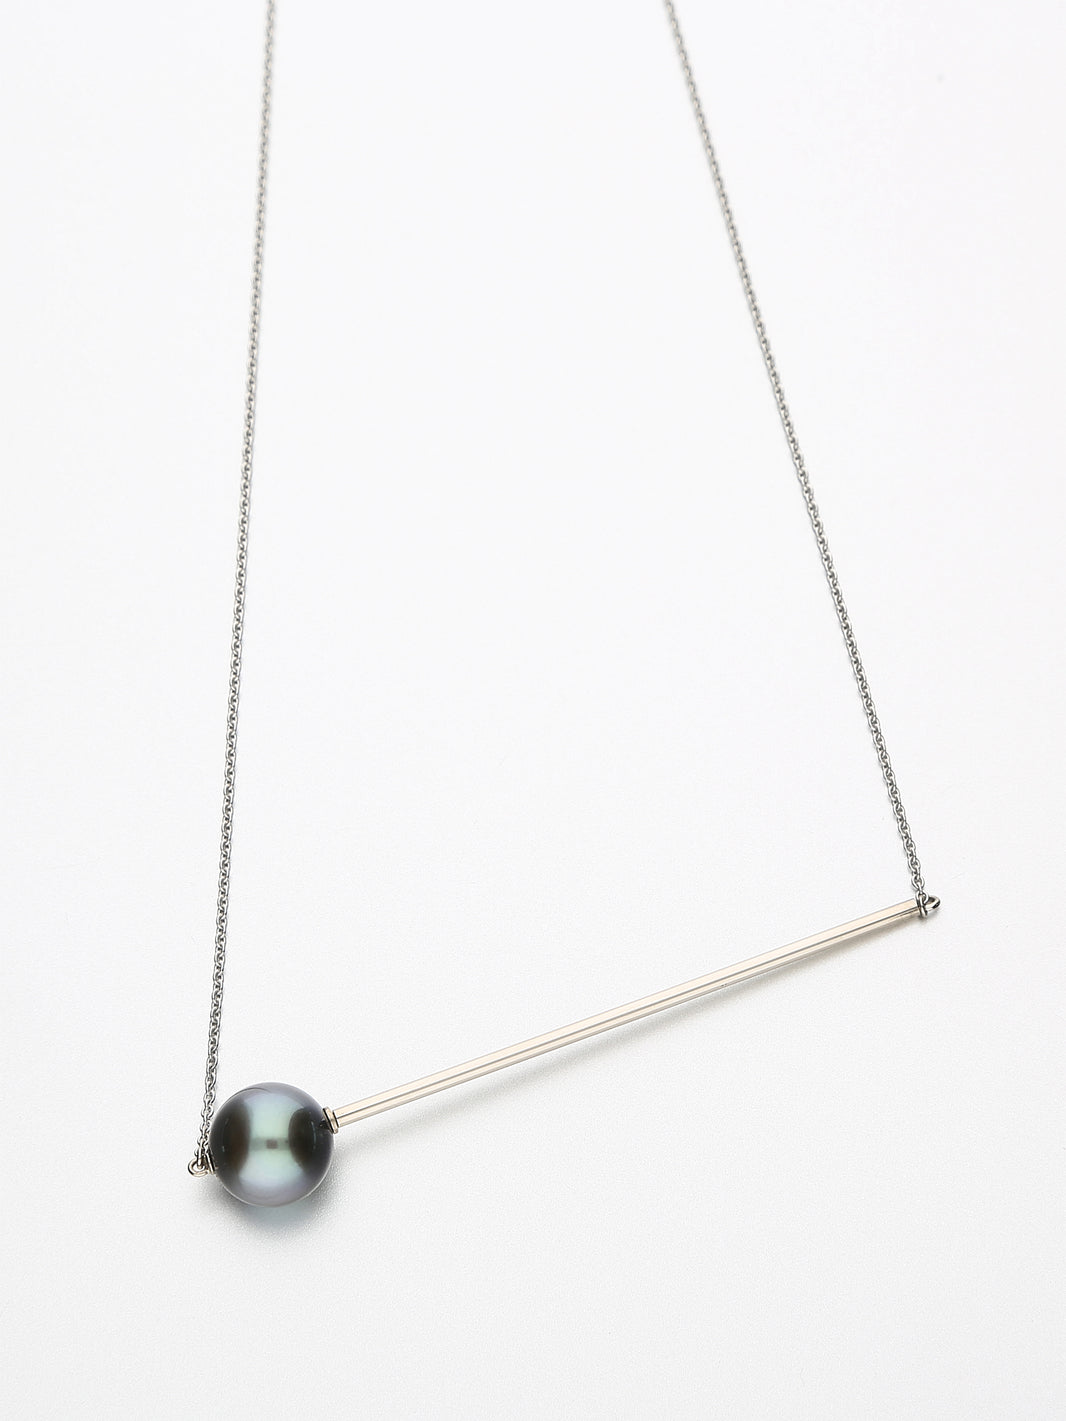 Abacus Pearl Necklace, White gold with dark Tahitian pearl 10mm